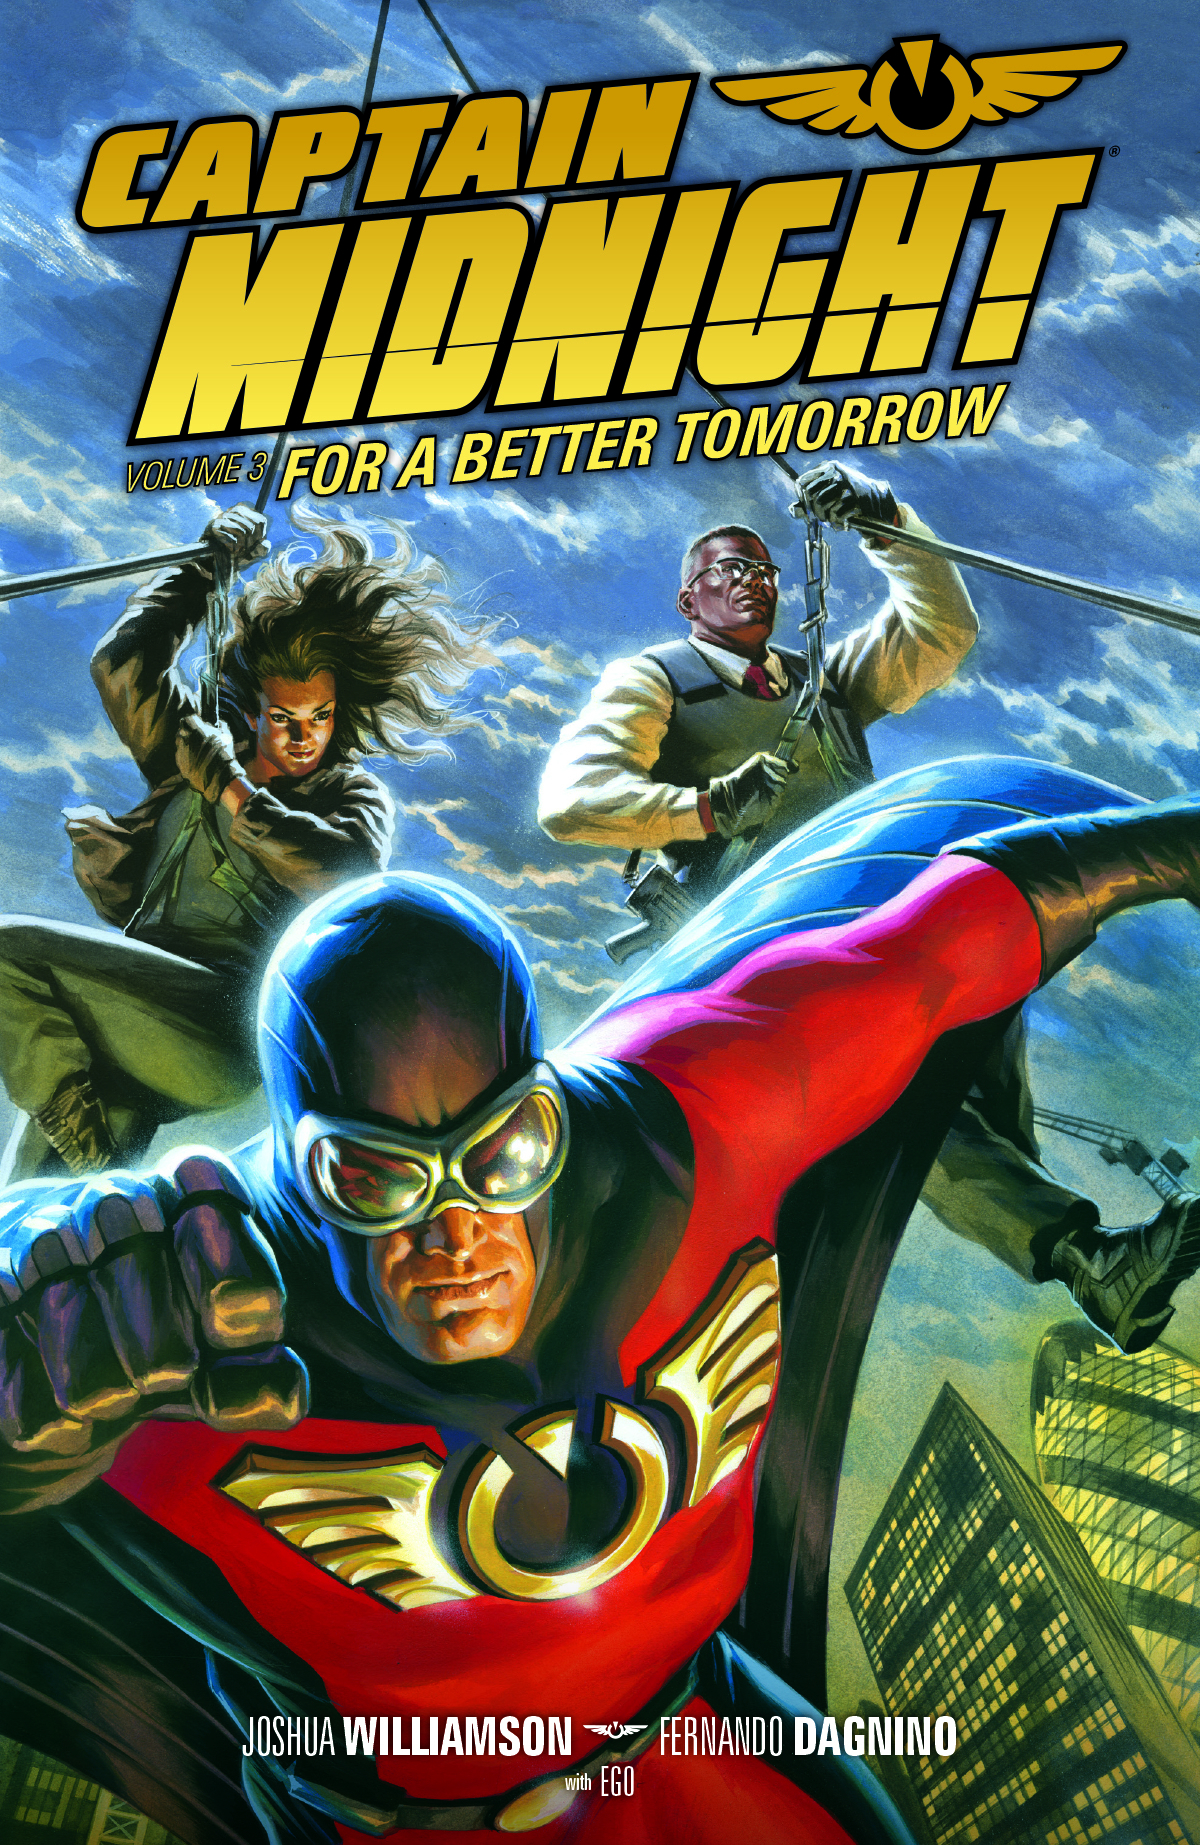 CAPTAIN MIDNIGHT TP VOL 03 BETTER TOMORROW